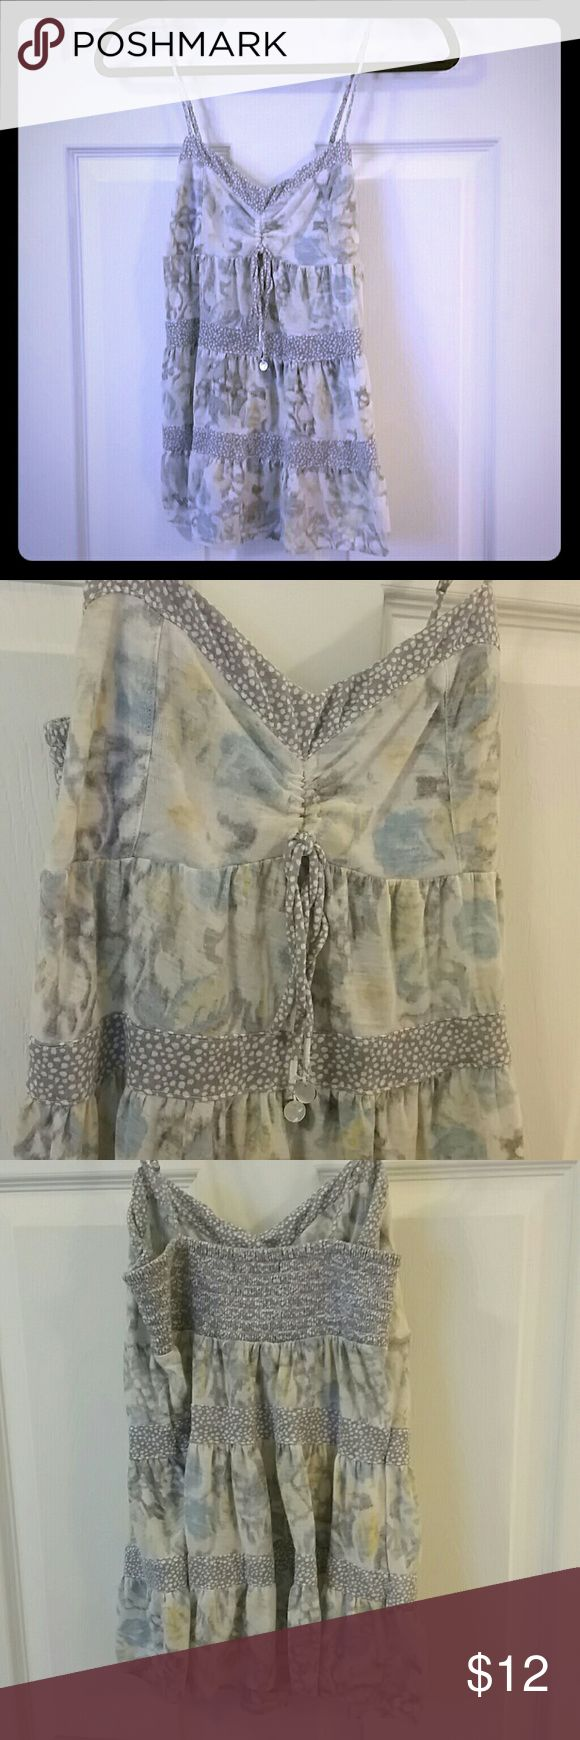 AEO Yellow & Gray Floral Cami American Eagle Outfitters Floral cami. Adjustable straps. Baby doll fit. Size medium. 80% polyester 20% linen. American Eagle Outfitters Tops Camisoles